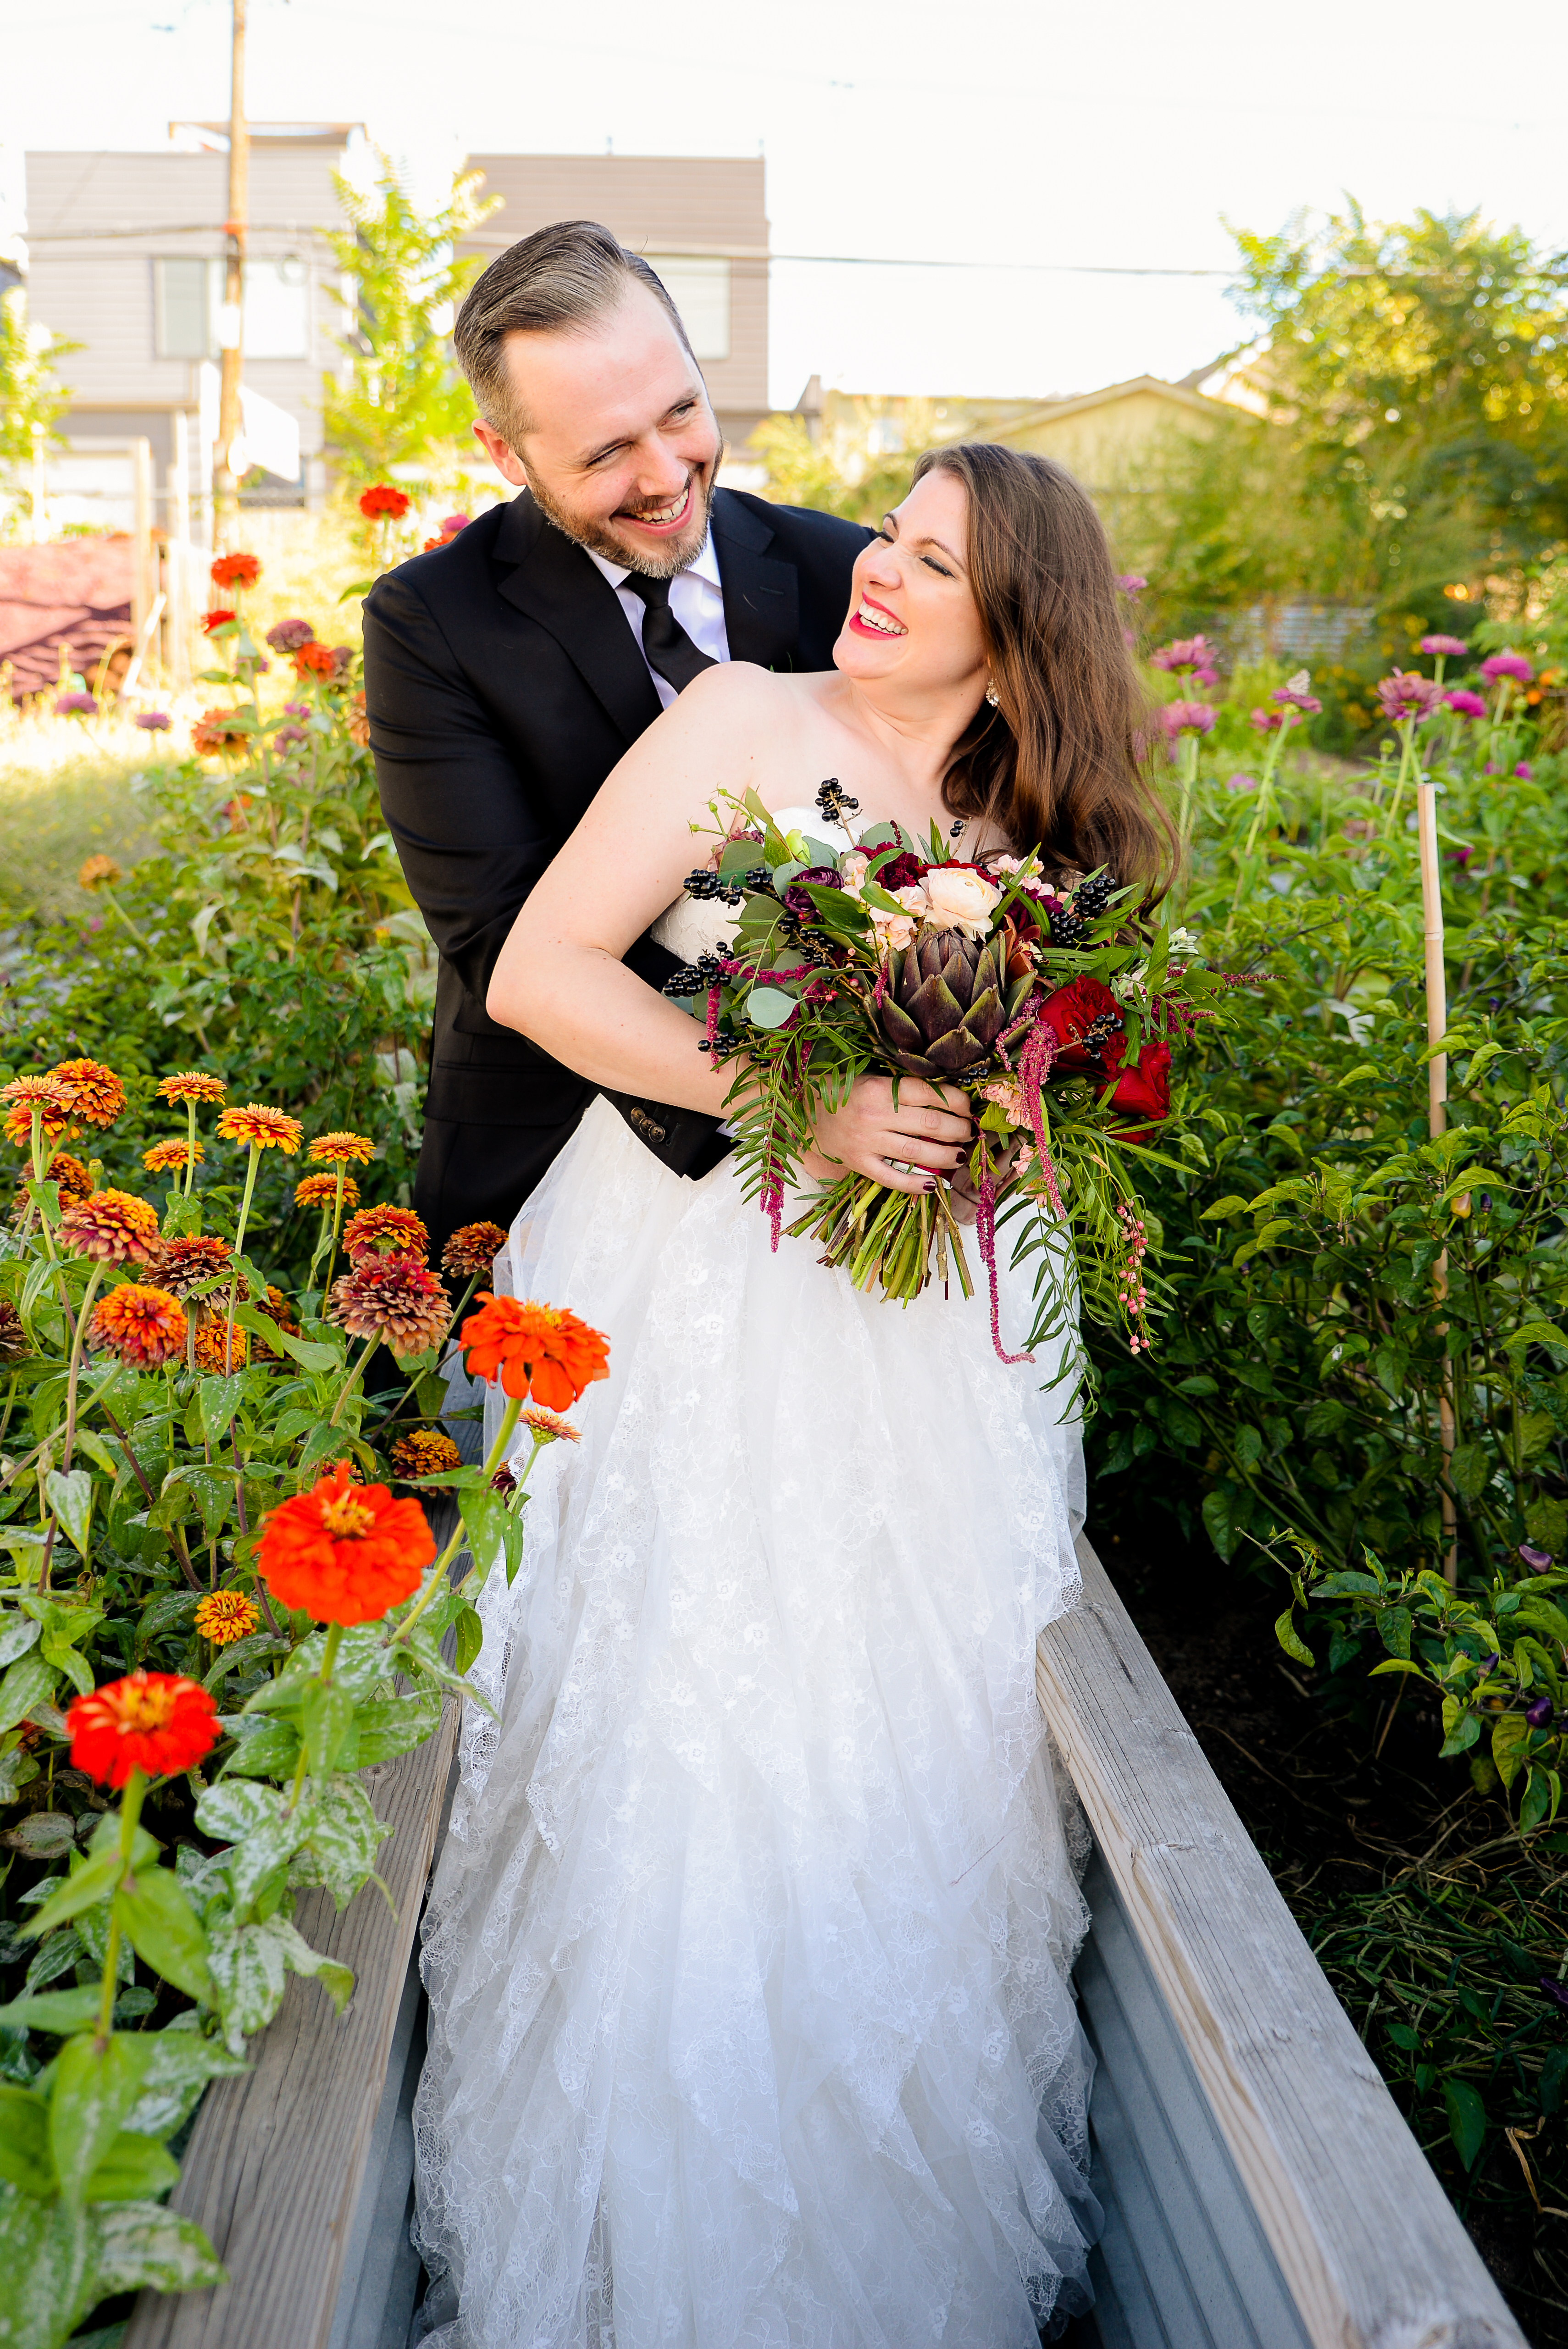 Bride and groom laughing in garden